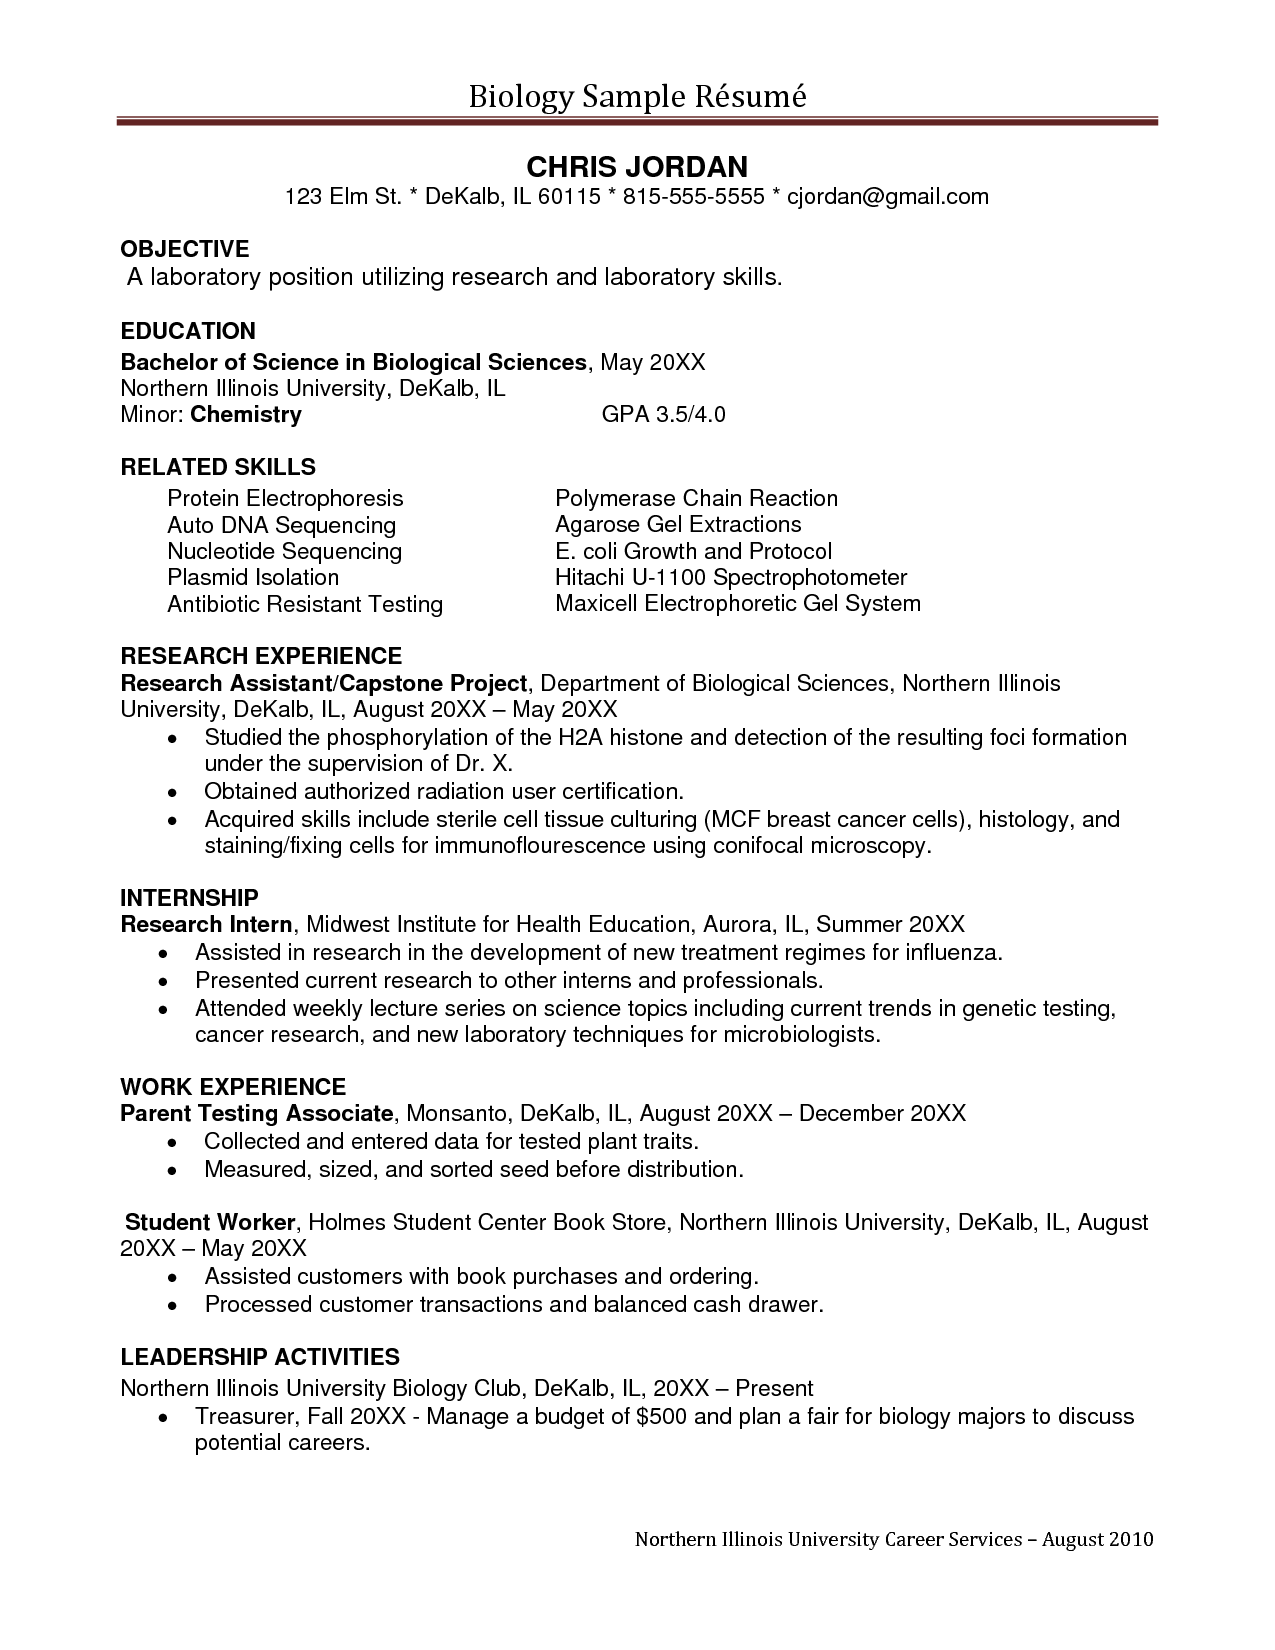 research assistant resume sample objective research assistant resume sample objective admin assistant objective resume sample - What To Write In An Objective For A Resume